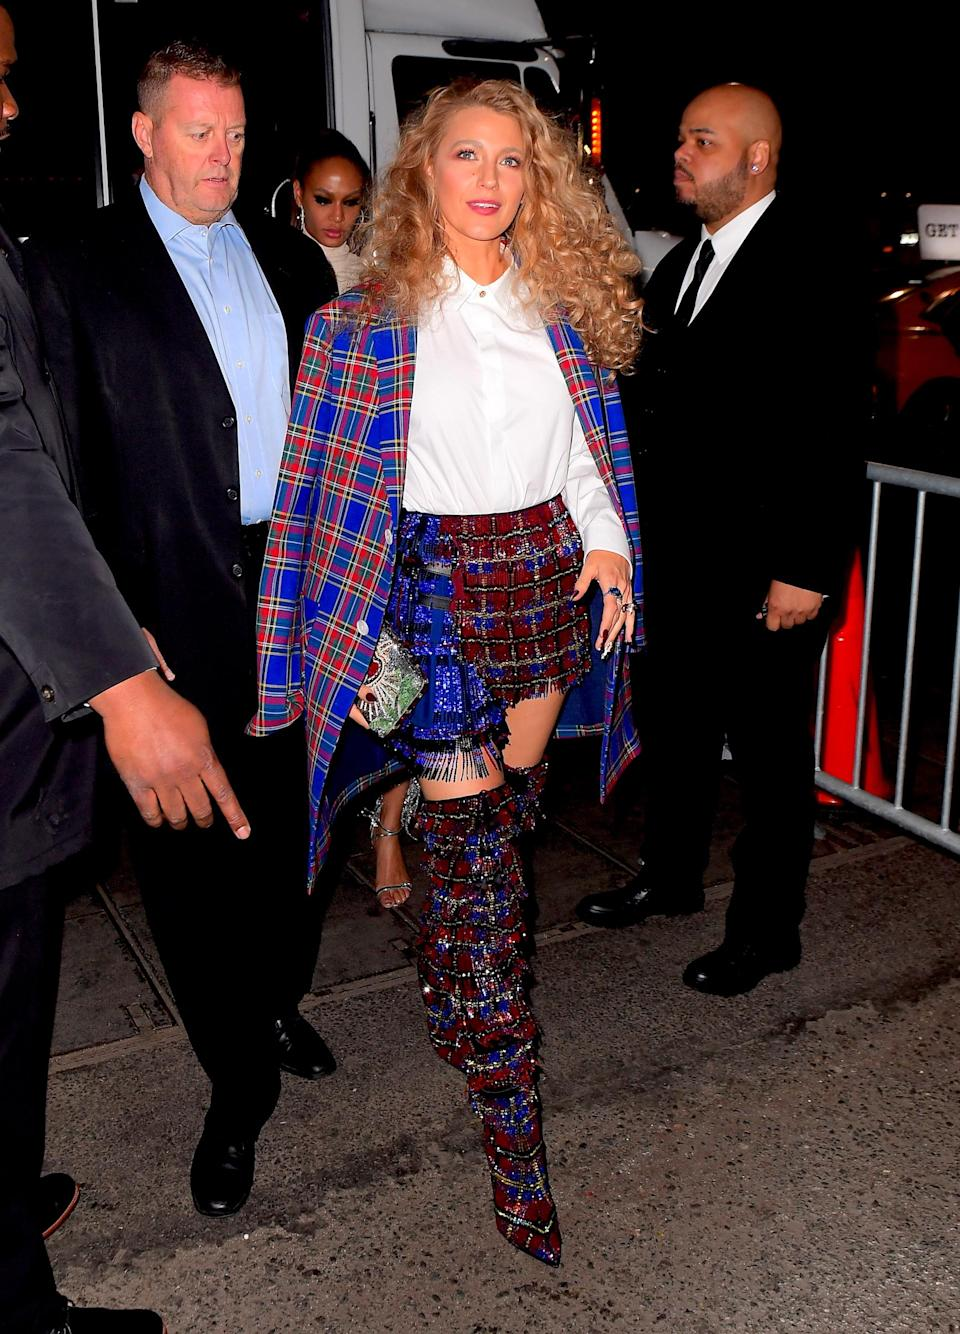 <p>The fashion didn't stop at the Metropolitan Museum for Blake Lively on Monday night. She continued her fashion reign as one of the night's best dressed as she changed out of her stunning Versace gown into a tartan ensemble with a mini skirt, matching knee high boots, and a blue jacket draped over her shoulders. (Photo: Splash News) </p>